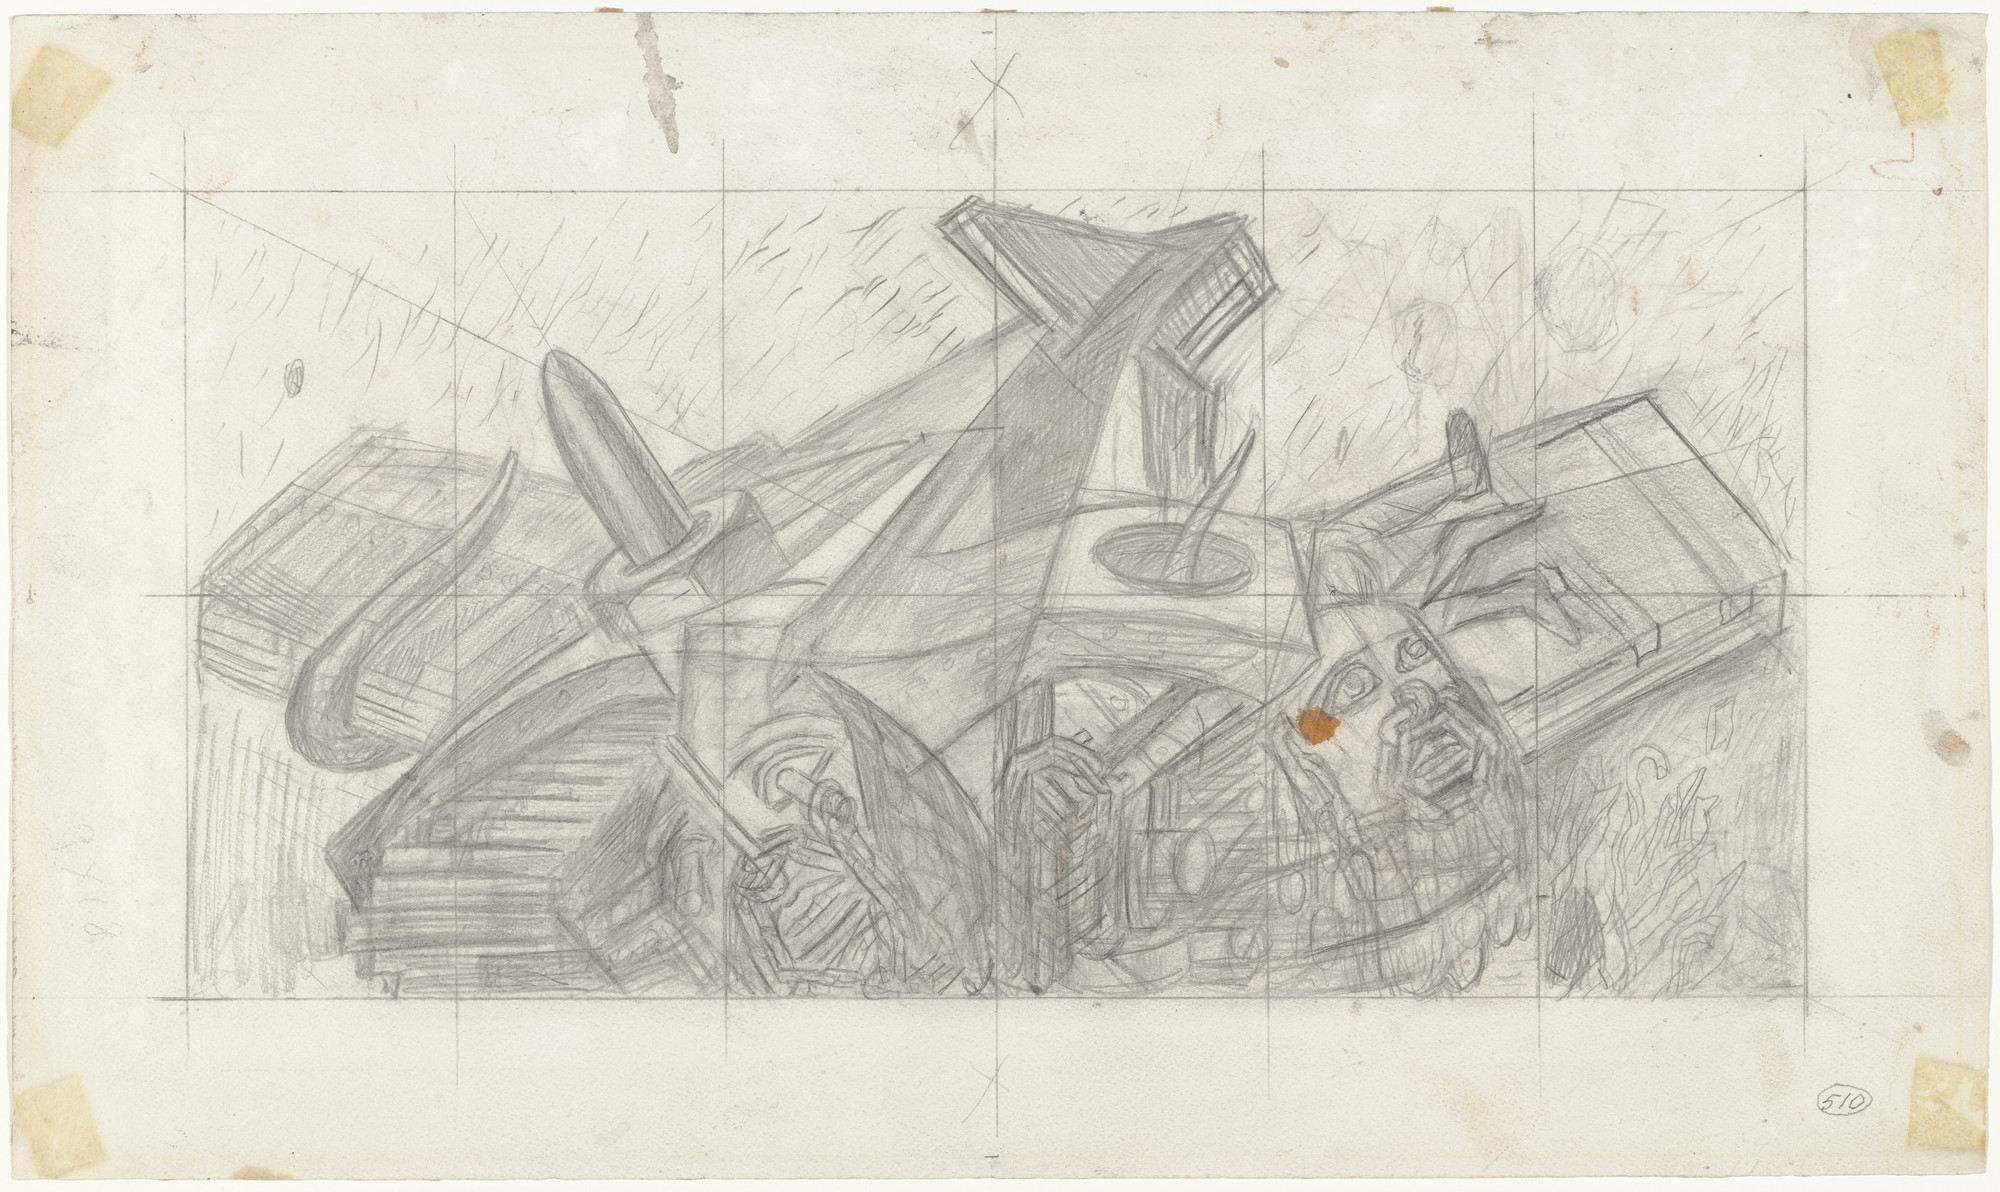 José Clemente Orozco. Study for Dive Bomber and Tank. 1940